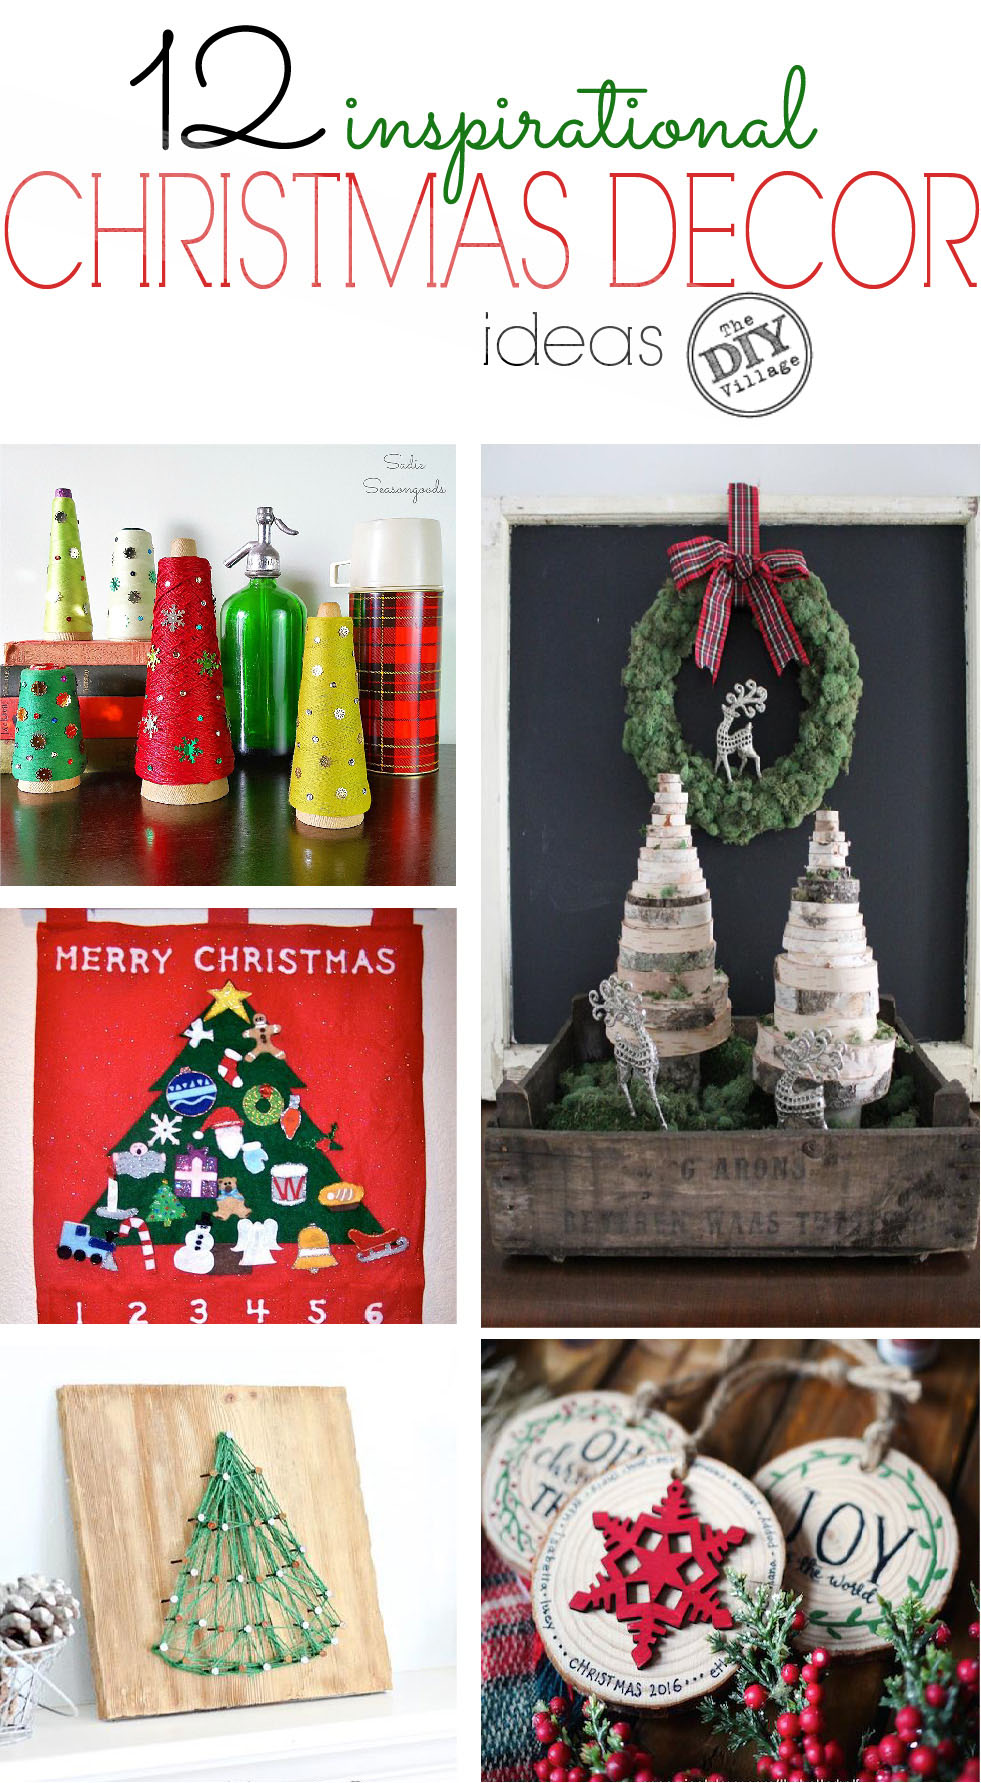 12 inspiration Christmas tree and decor ideas.